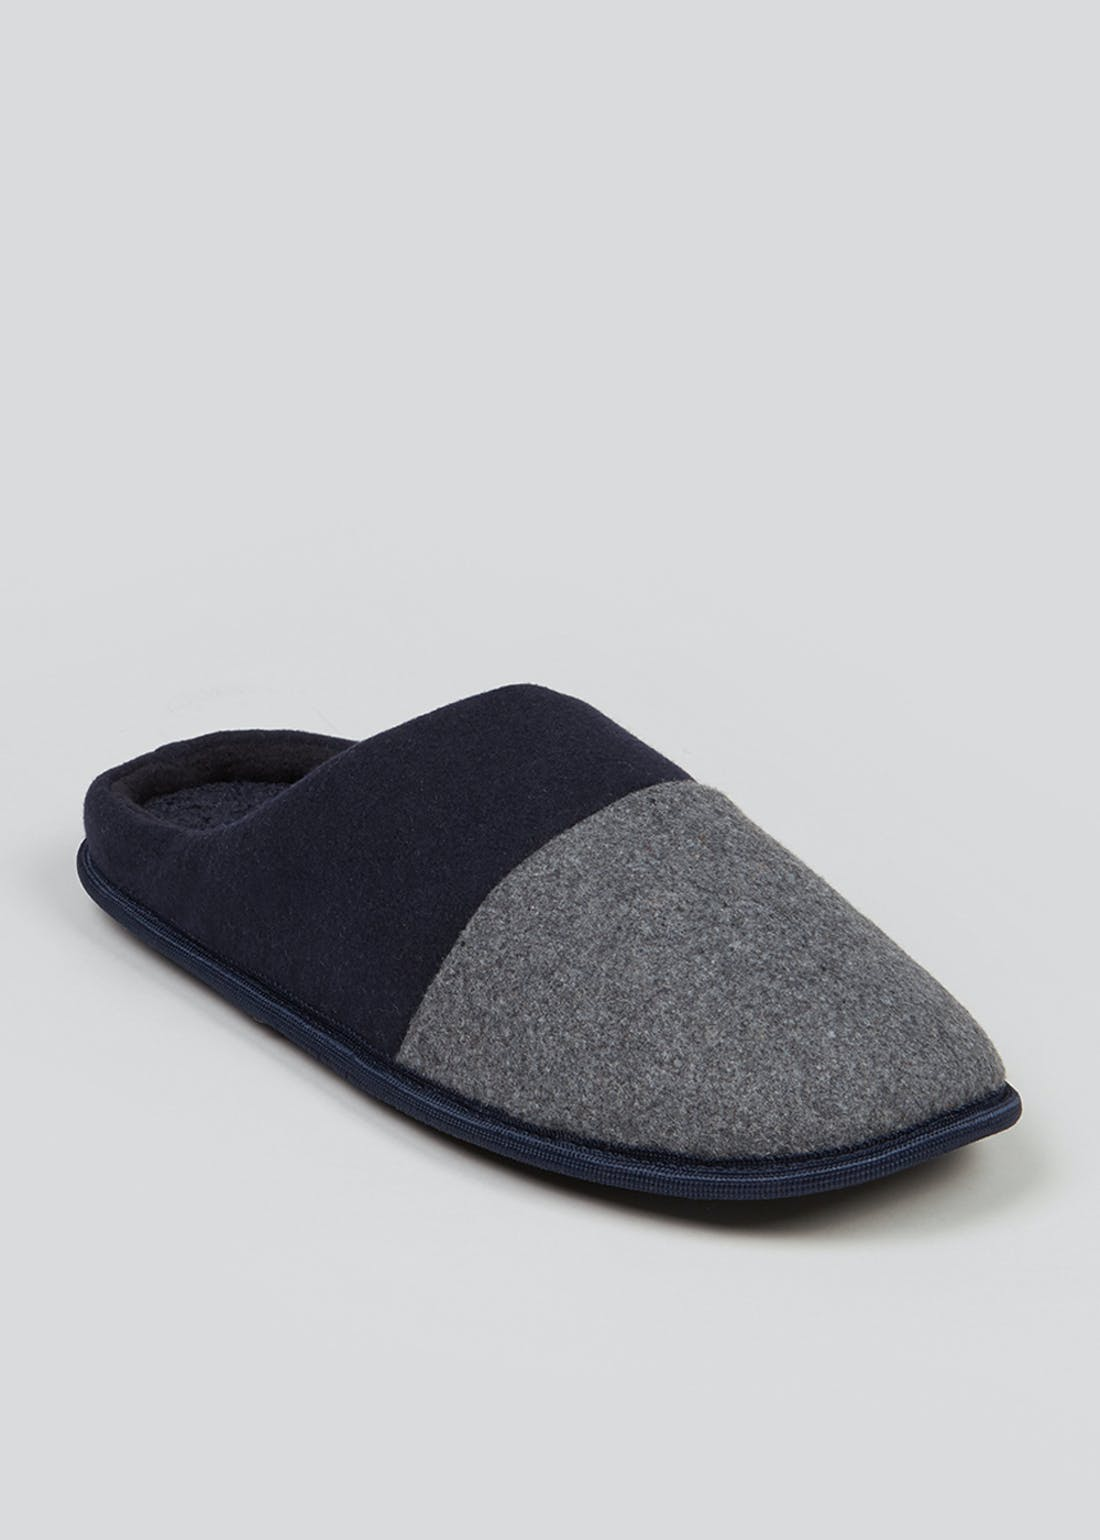 Navy & Grey Memory Foam Slippers